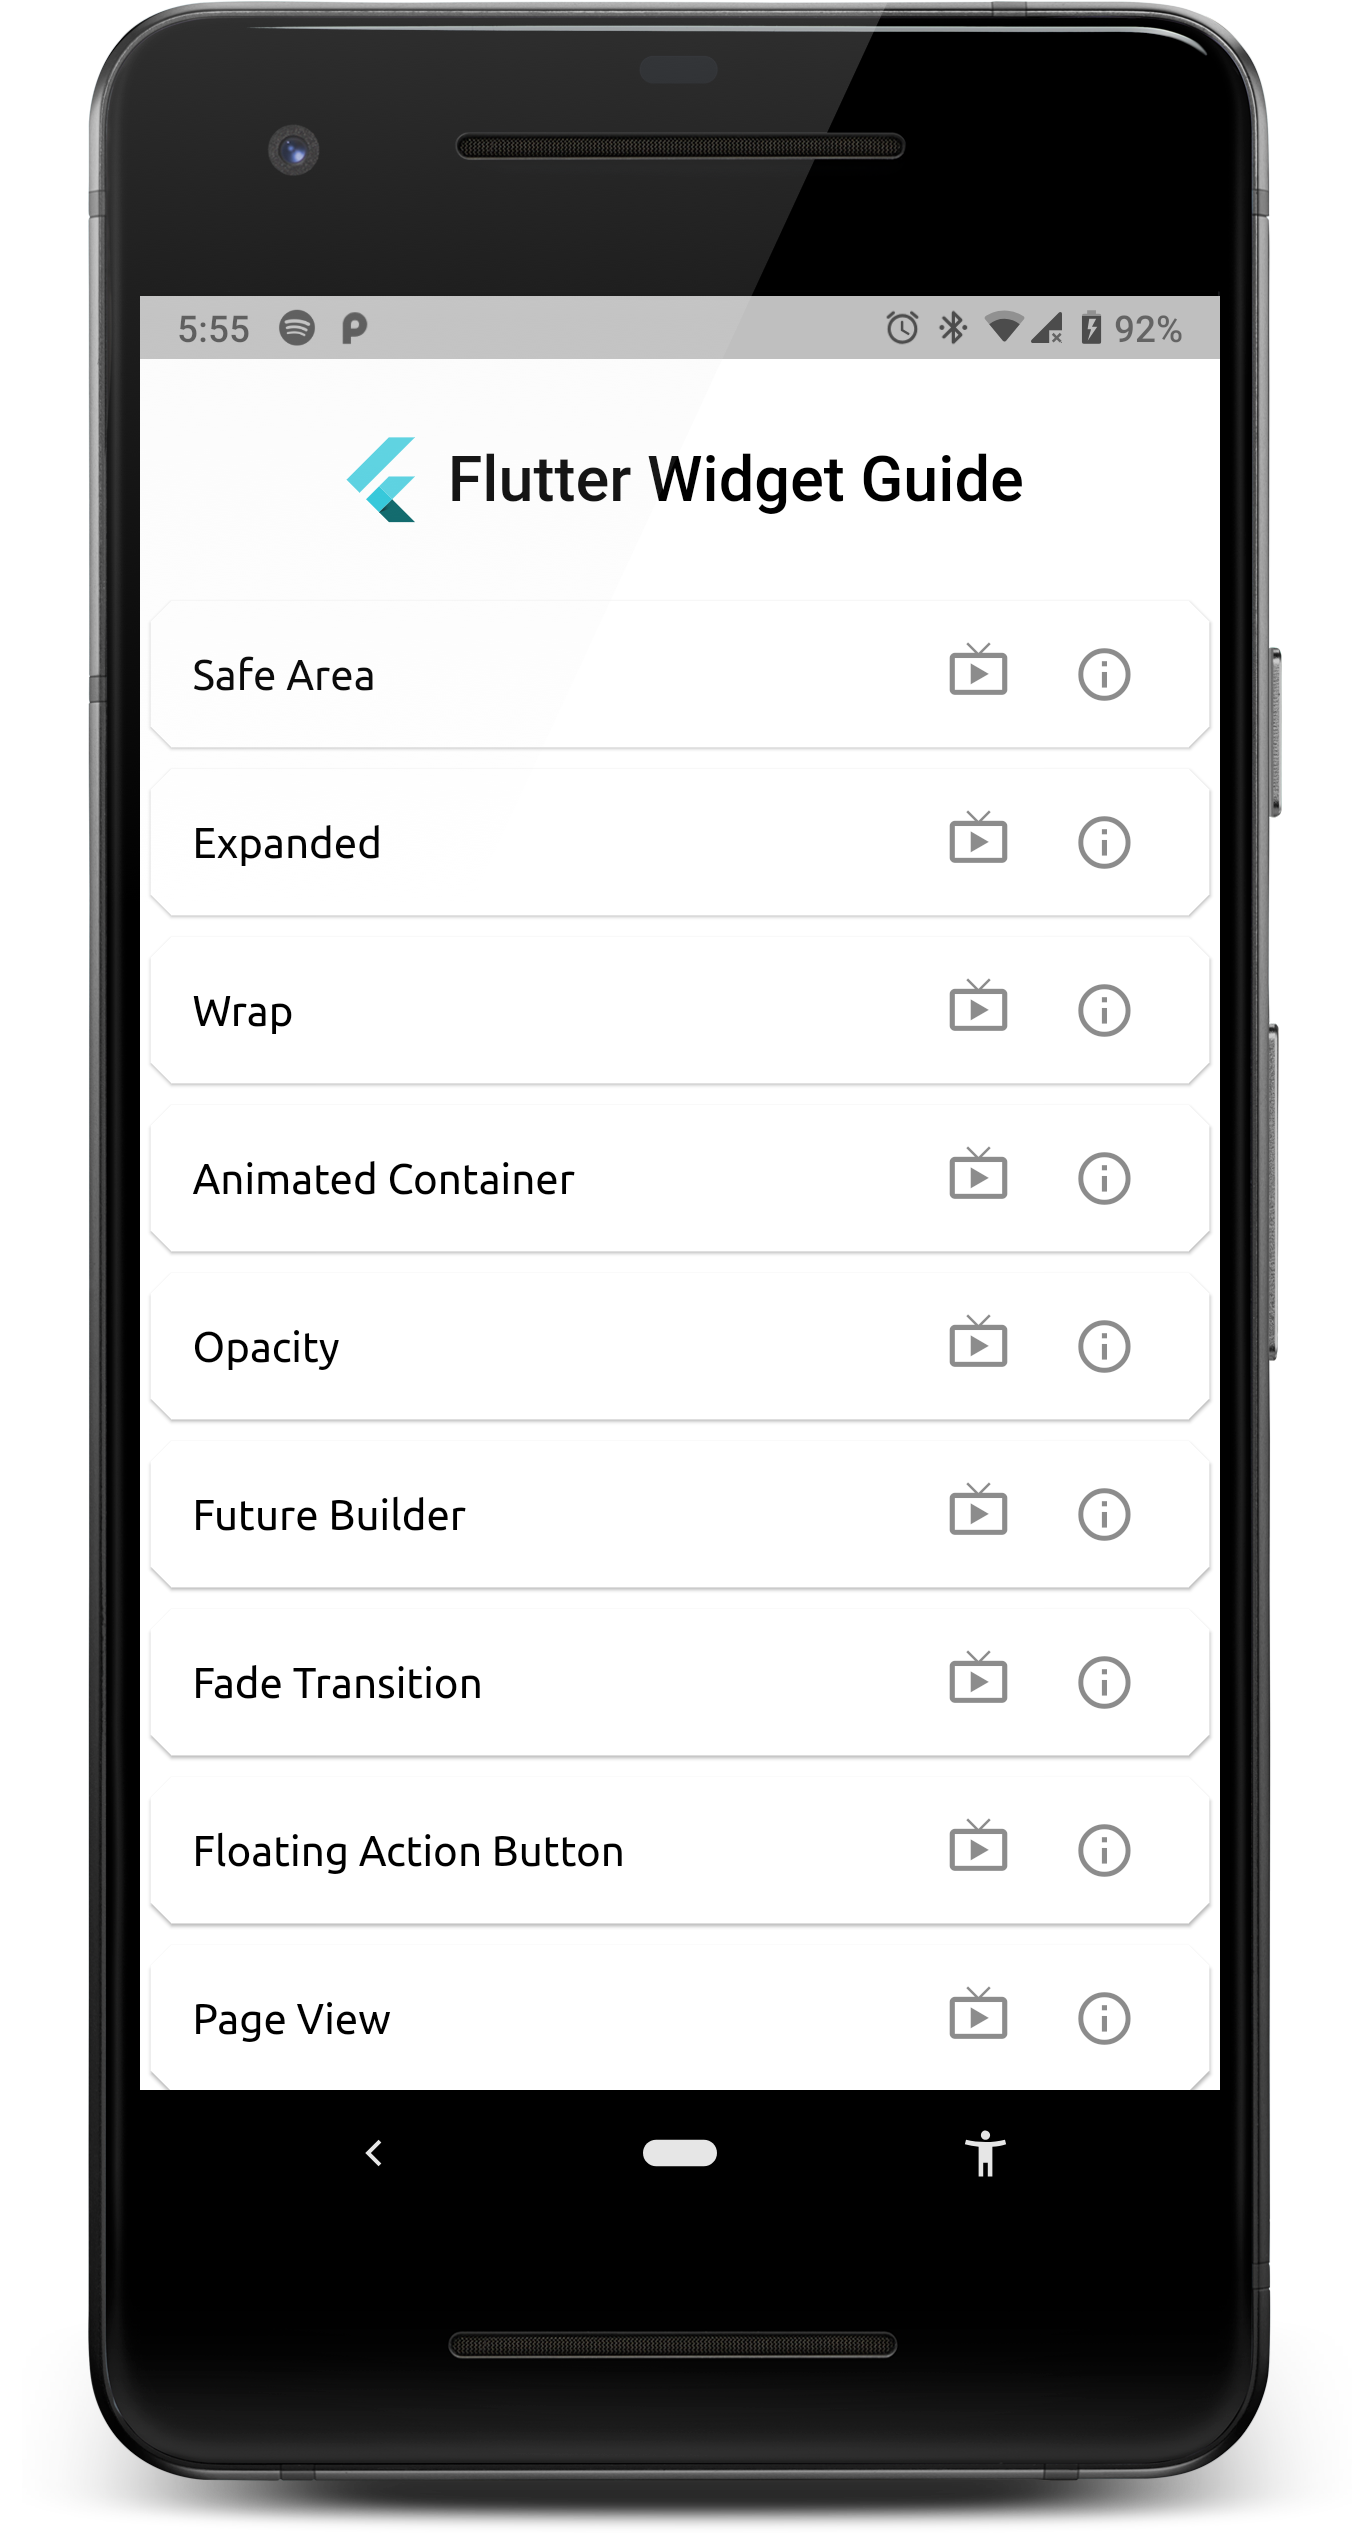 A flutter appliction listing all the widgets covered in